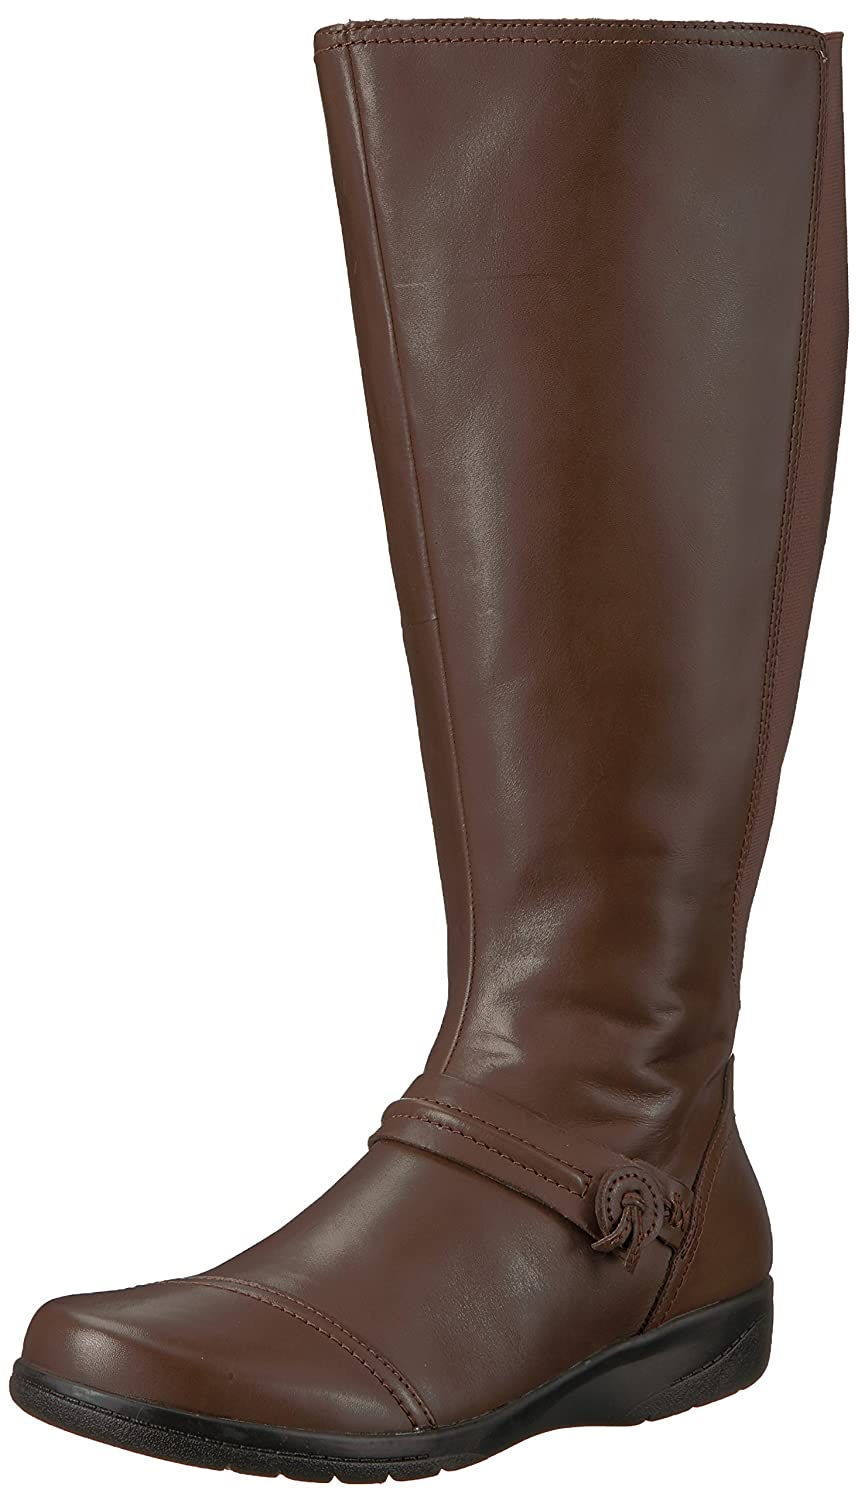 CLARKS Women's Cheyn Whisk Wide Calf Knee High Boot B072M6LBK7 8.5 W US|Dark Brown Leather